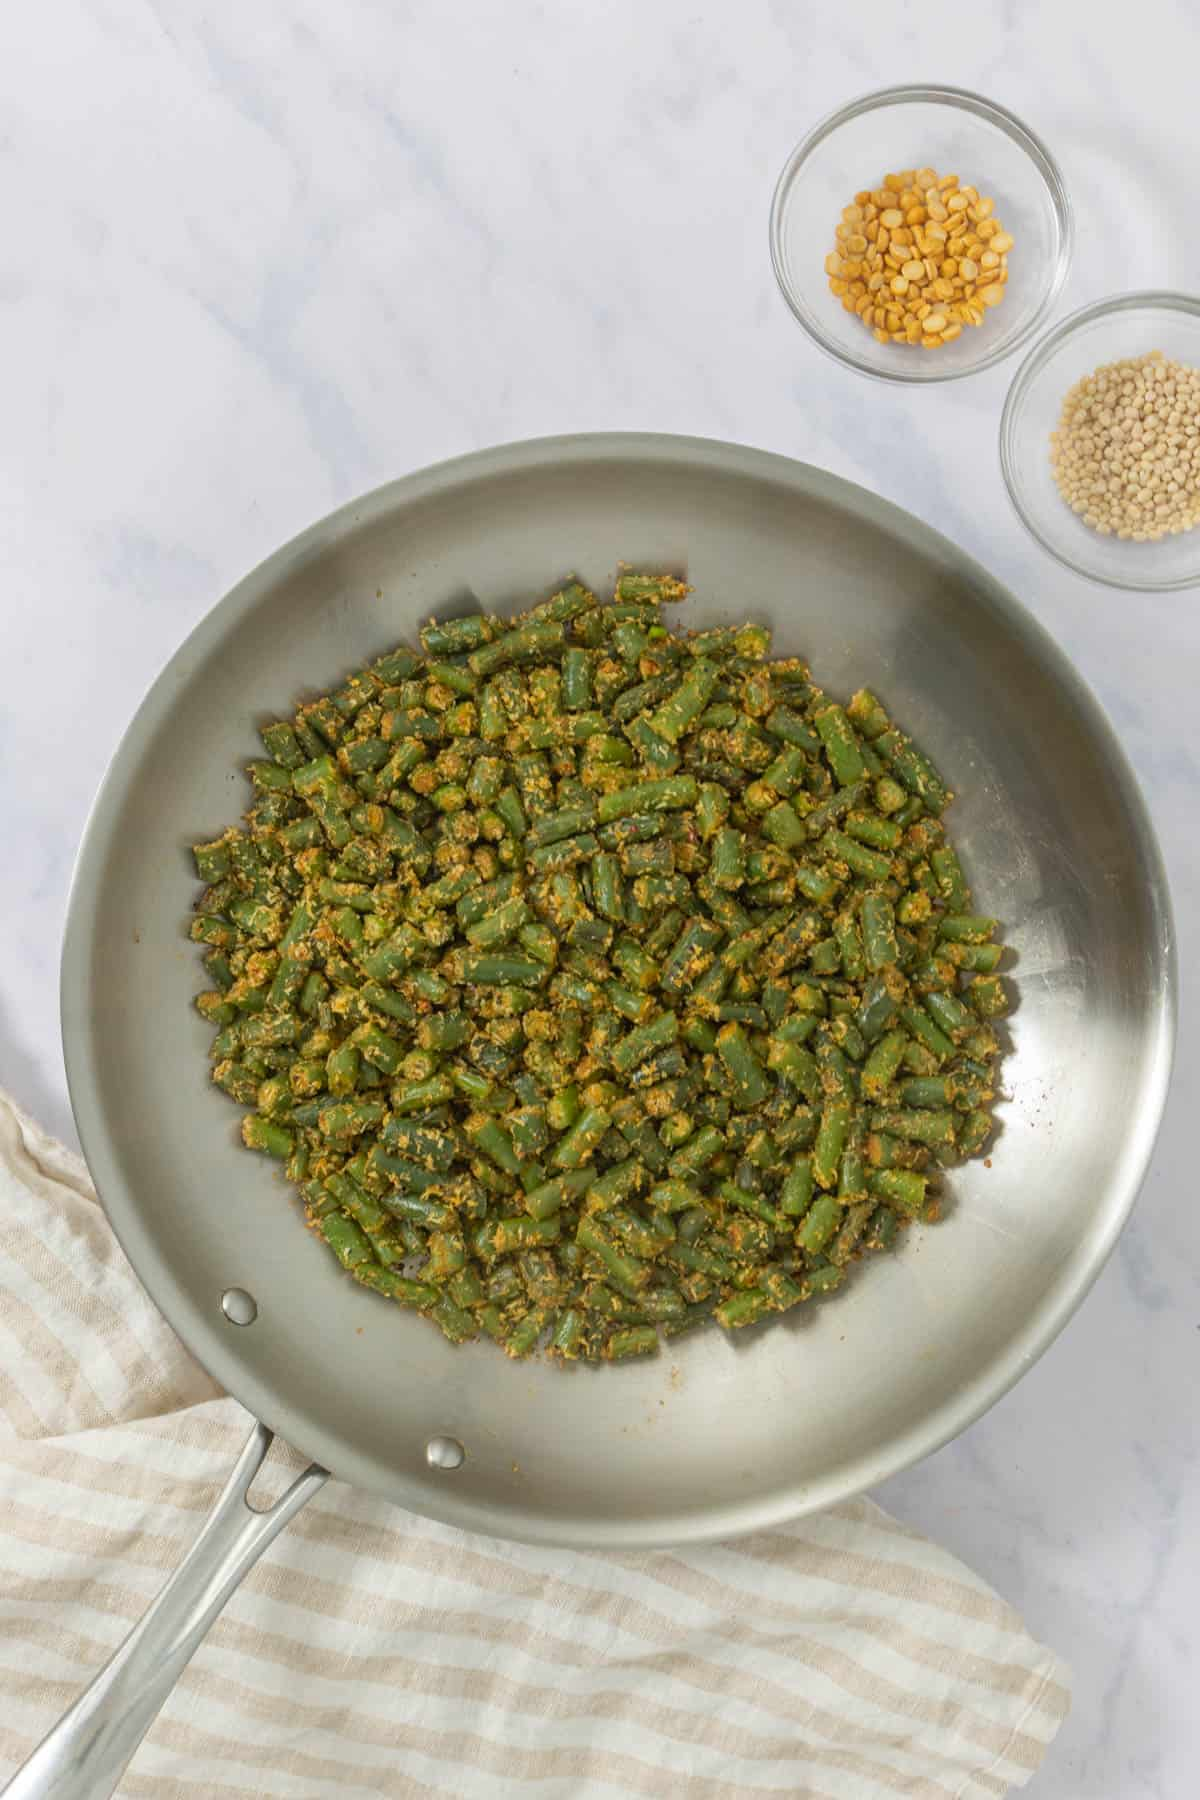 Skillet green beans, finished product